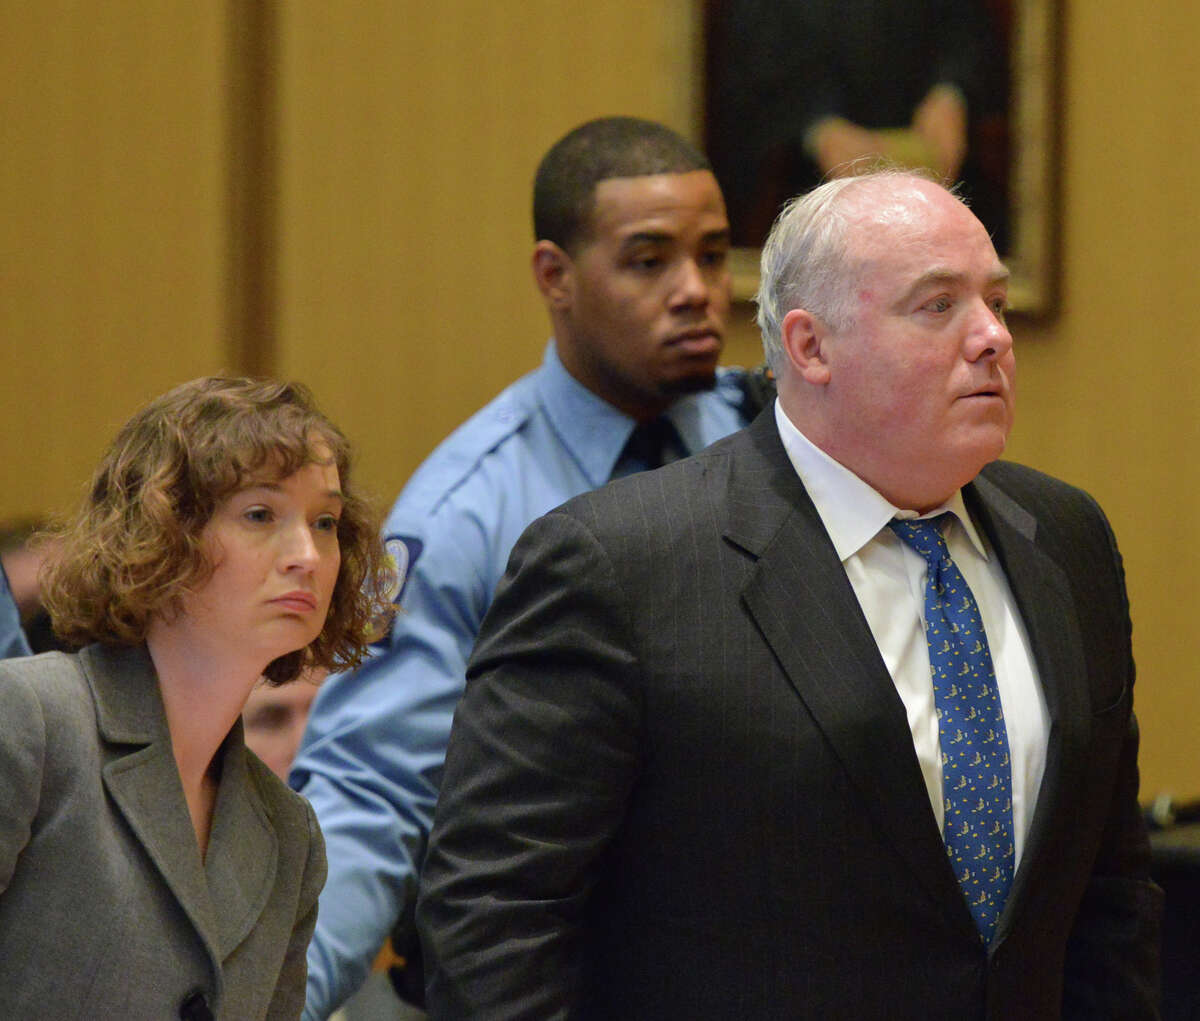 Michael Skakel reacts to being granted bail during his hearing at Stamford Superior Court, in Stamford, Conn., Thursday, Nov. 21, 2013. At left is one of Skakel's attorney's Jessica Santos. Skakel will be released on bail after receiving a new trial for the 1975 murder of his Greenwich, Conn., neighbor, Martha Moxley, which he was convicted of in 2002.